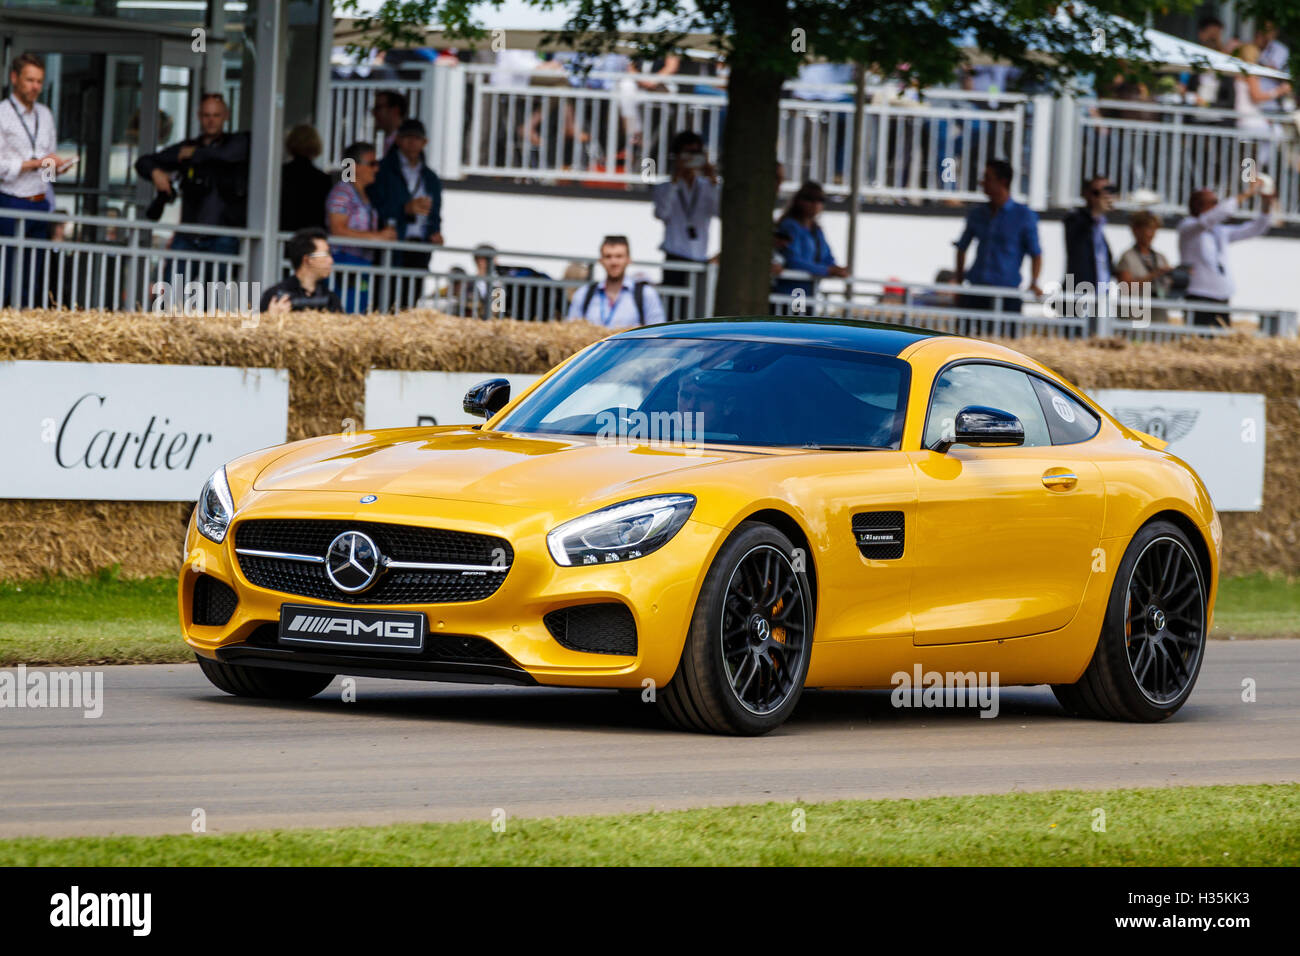 2016 Mercedes-Benz AMG GT-S supercar at the 2016 Goodwood Festival ...